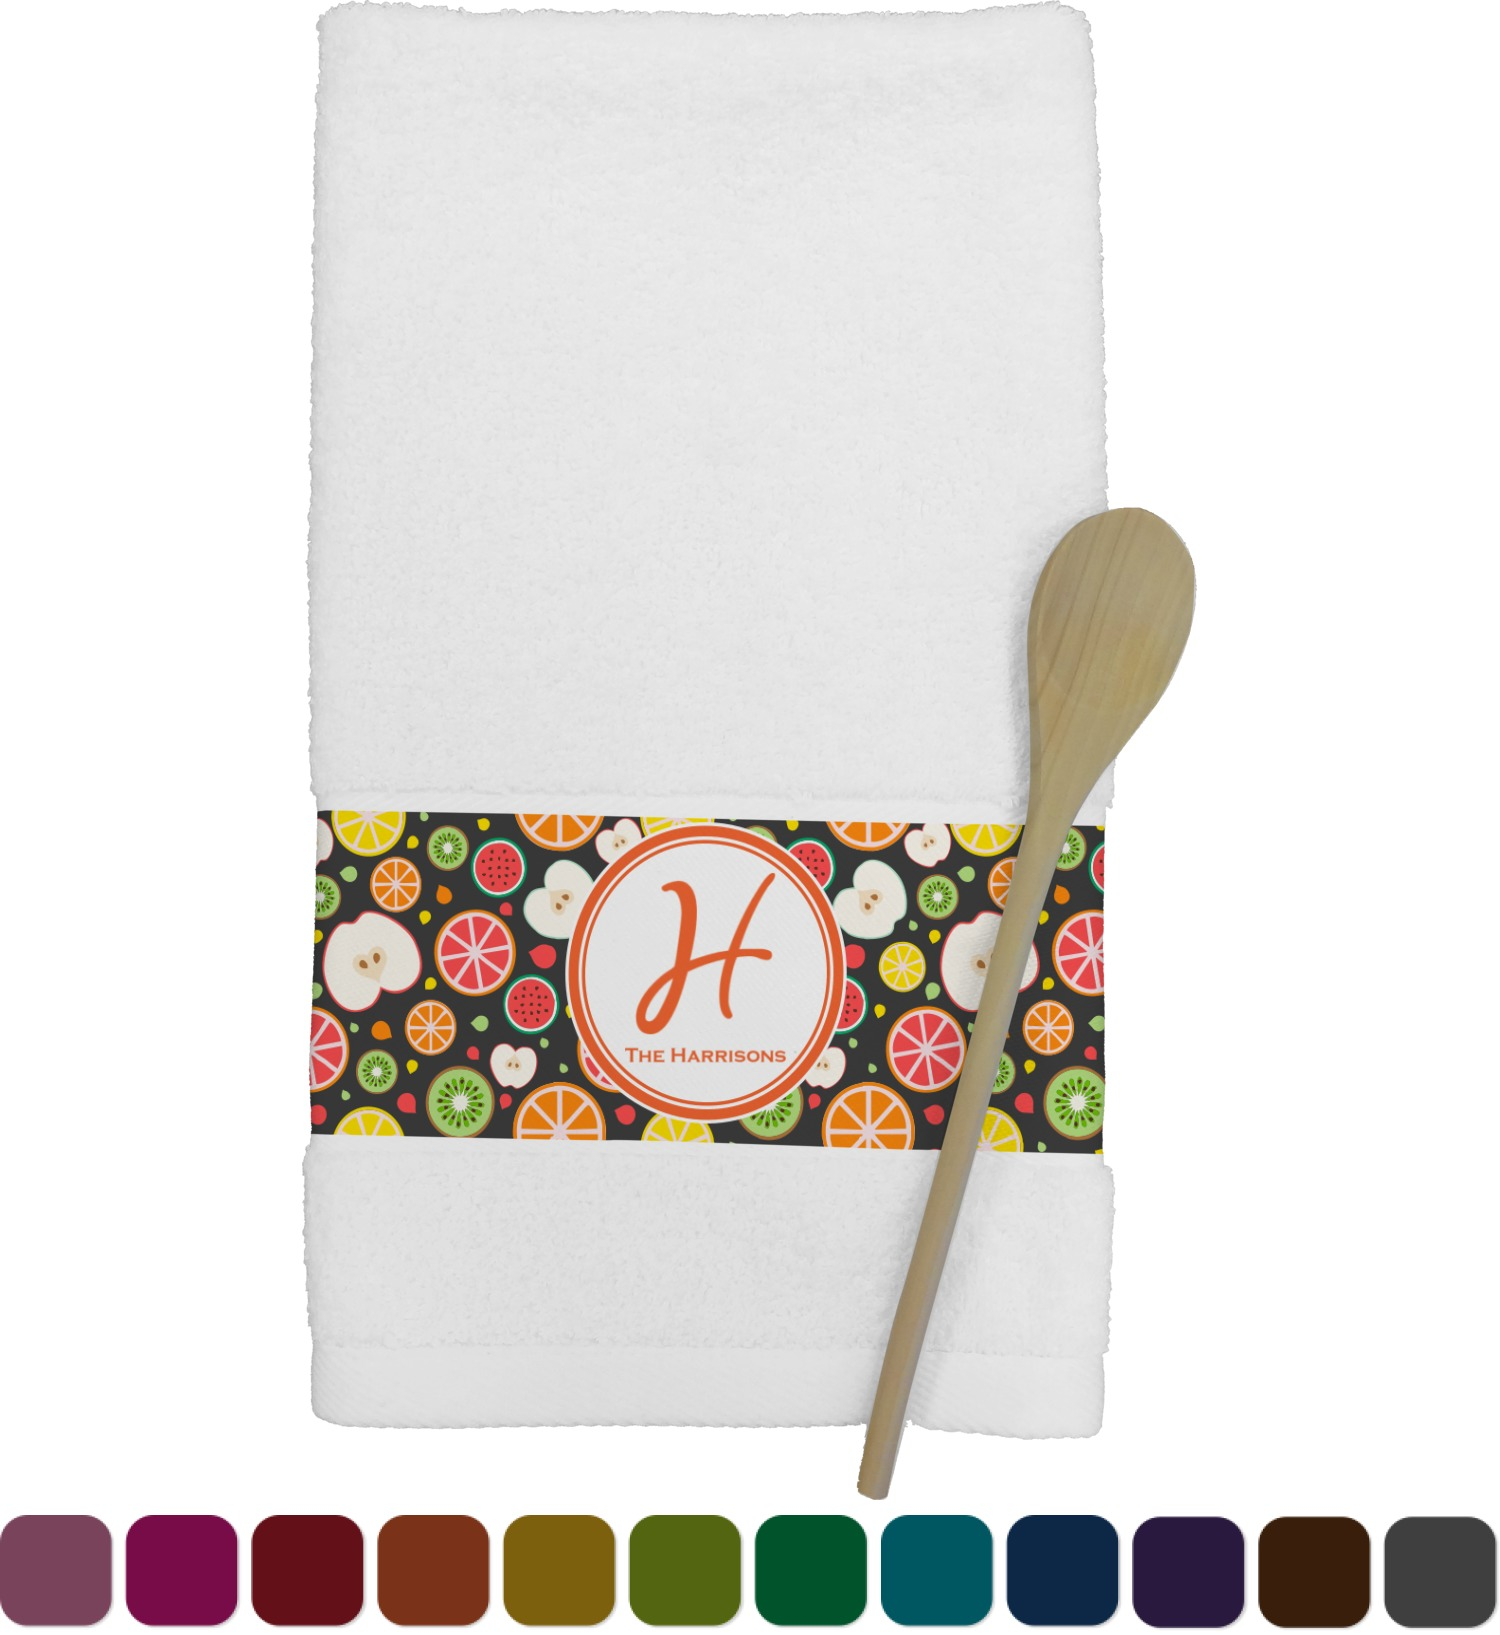 personalized kitchen towels faucet sprayer hose apples and oranges towel youcustomizeit